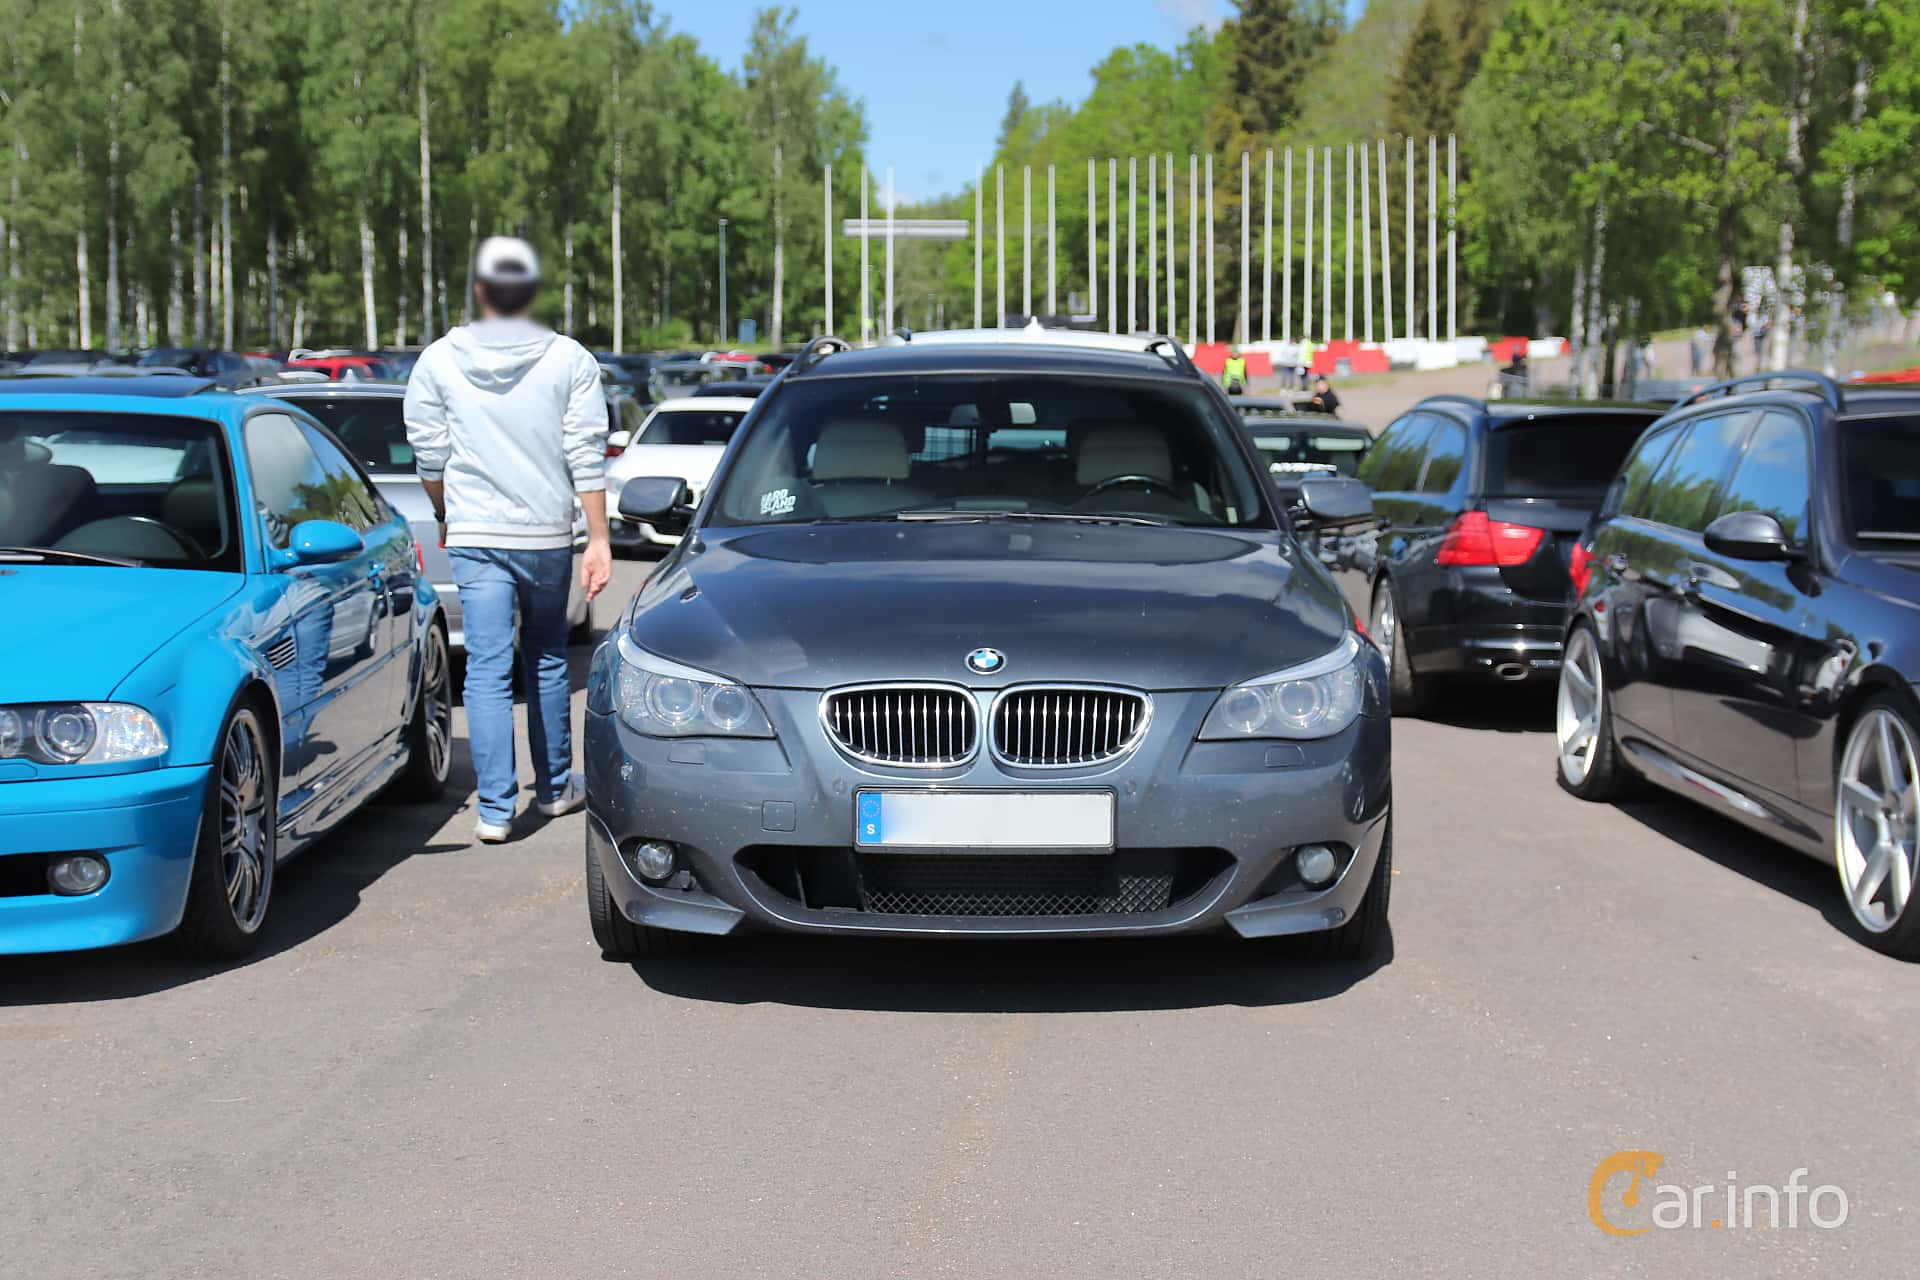 2 images of BMW 535d Touring Steptronic, 286hp, 2007 by Jarbo